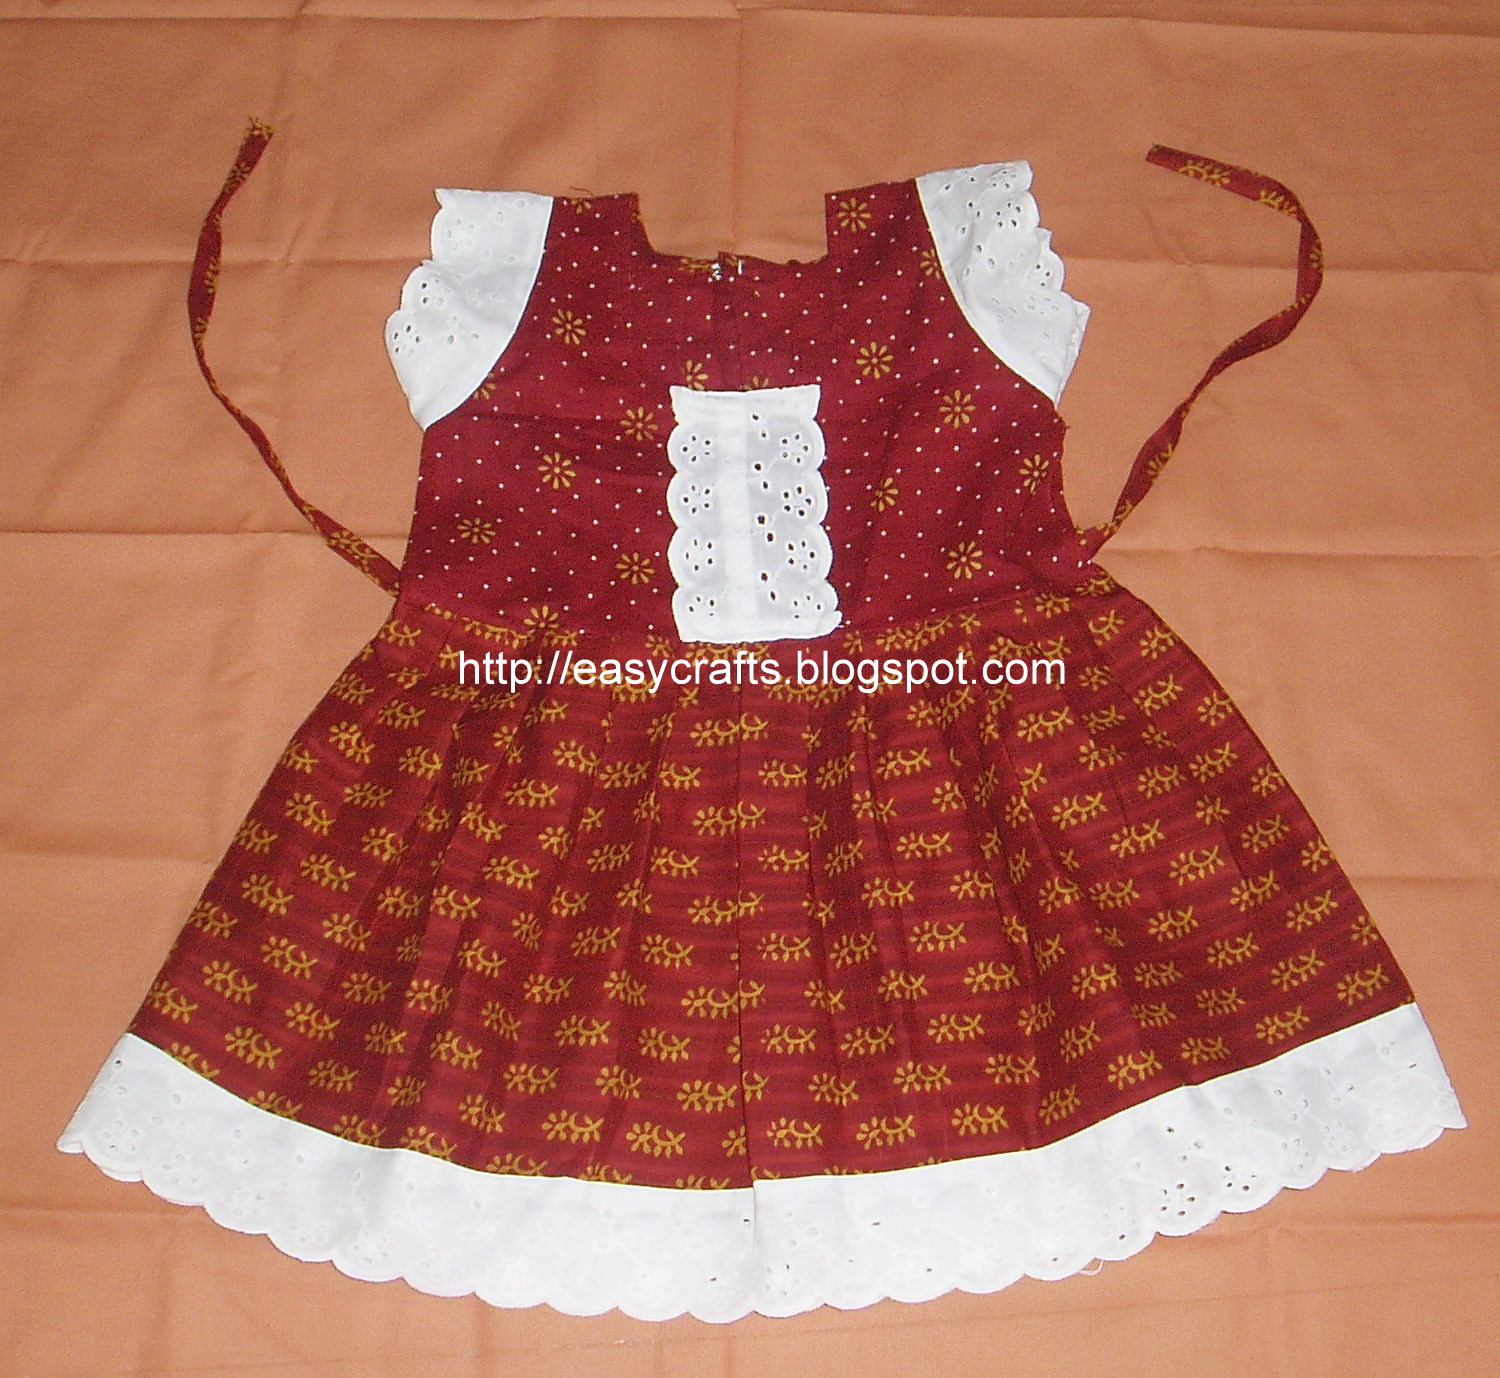 Baby Girls Frocks http://easycrafts.blogspot.com/2011/03/girl-baby-frock.html